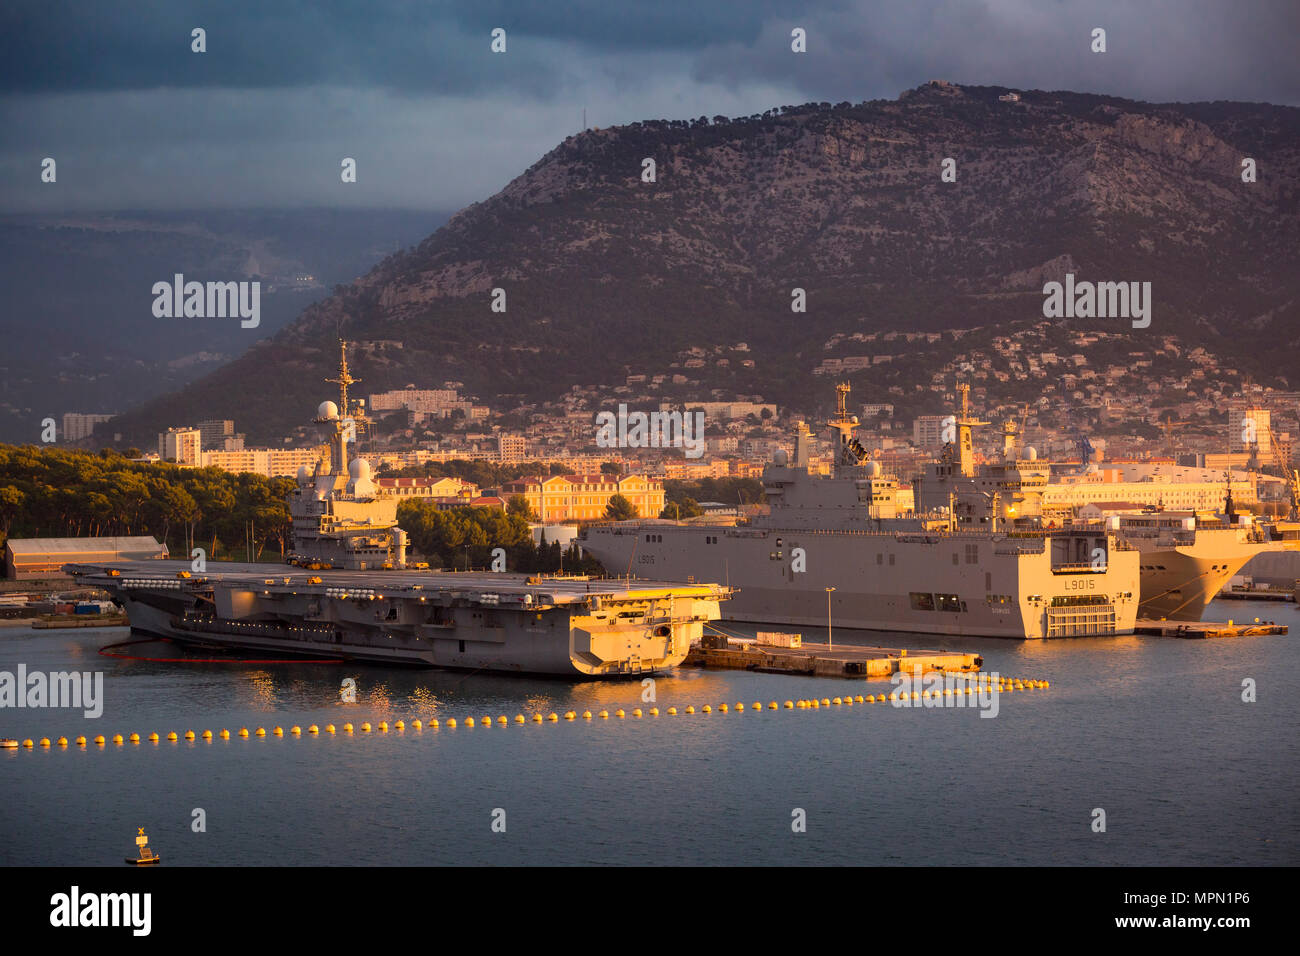 Sunrise over nuclear powered Aircraft Carrier Charles de Gaulle, Tonnerre Helicopter Carrier and ships of the French Navy at Toulon, Provence, France - Stock Image